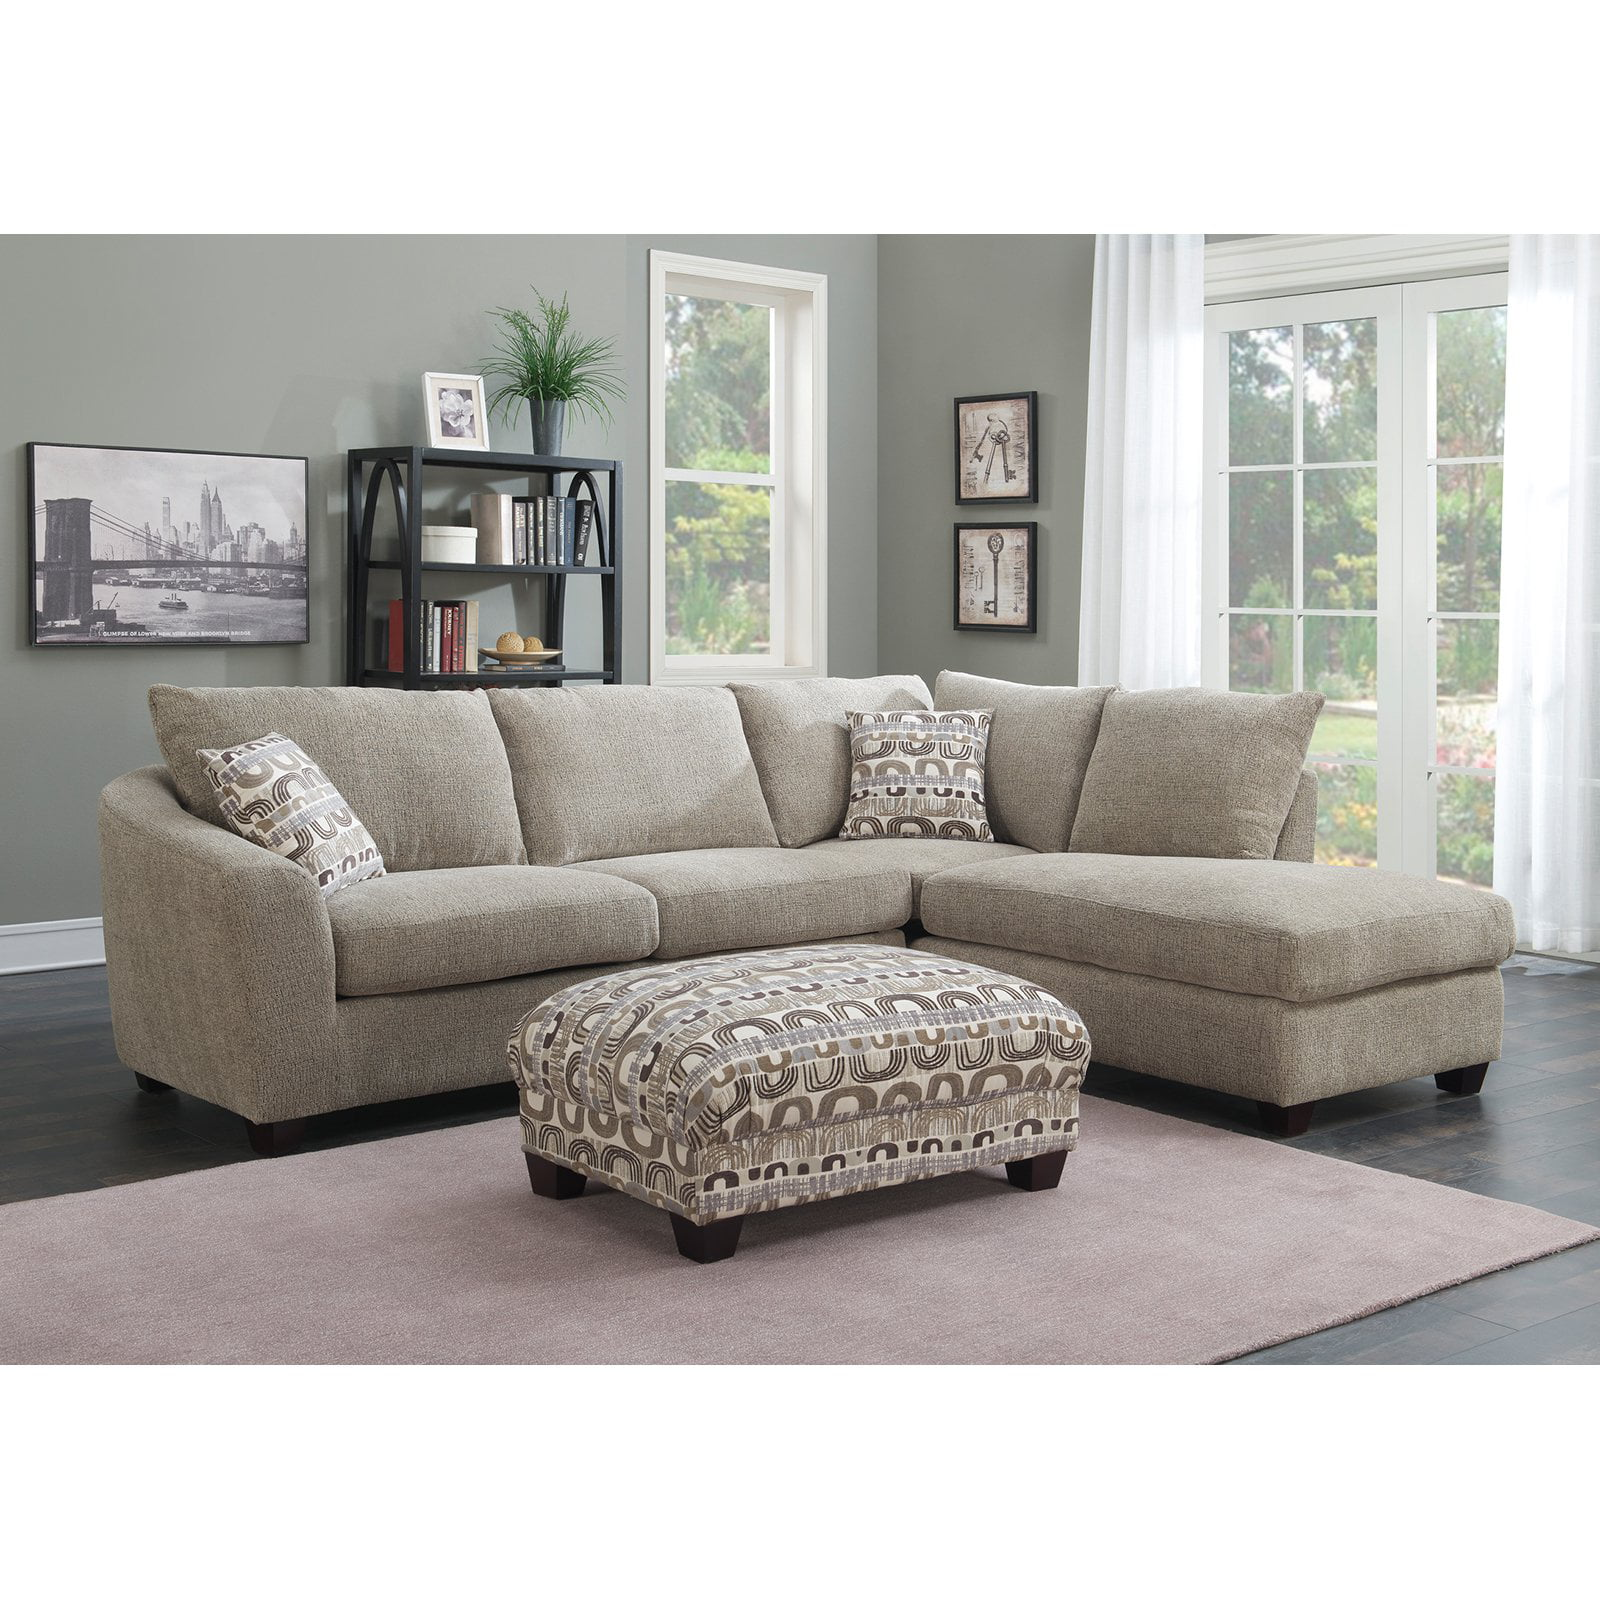 emerald home urbana 2 piece sectional sofa with chaise walmart com rh walmart com 2 piece sectional sofa sleeper 2 piece sectional sofa sales